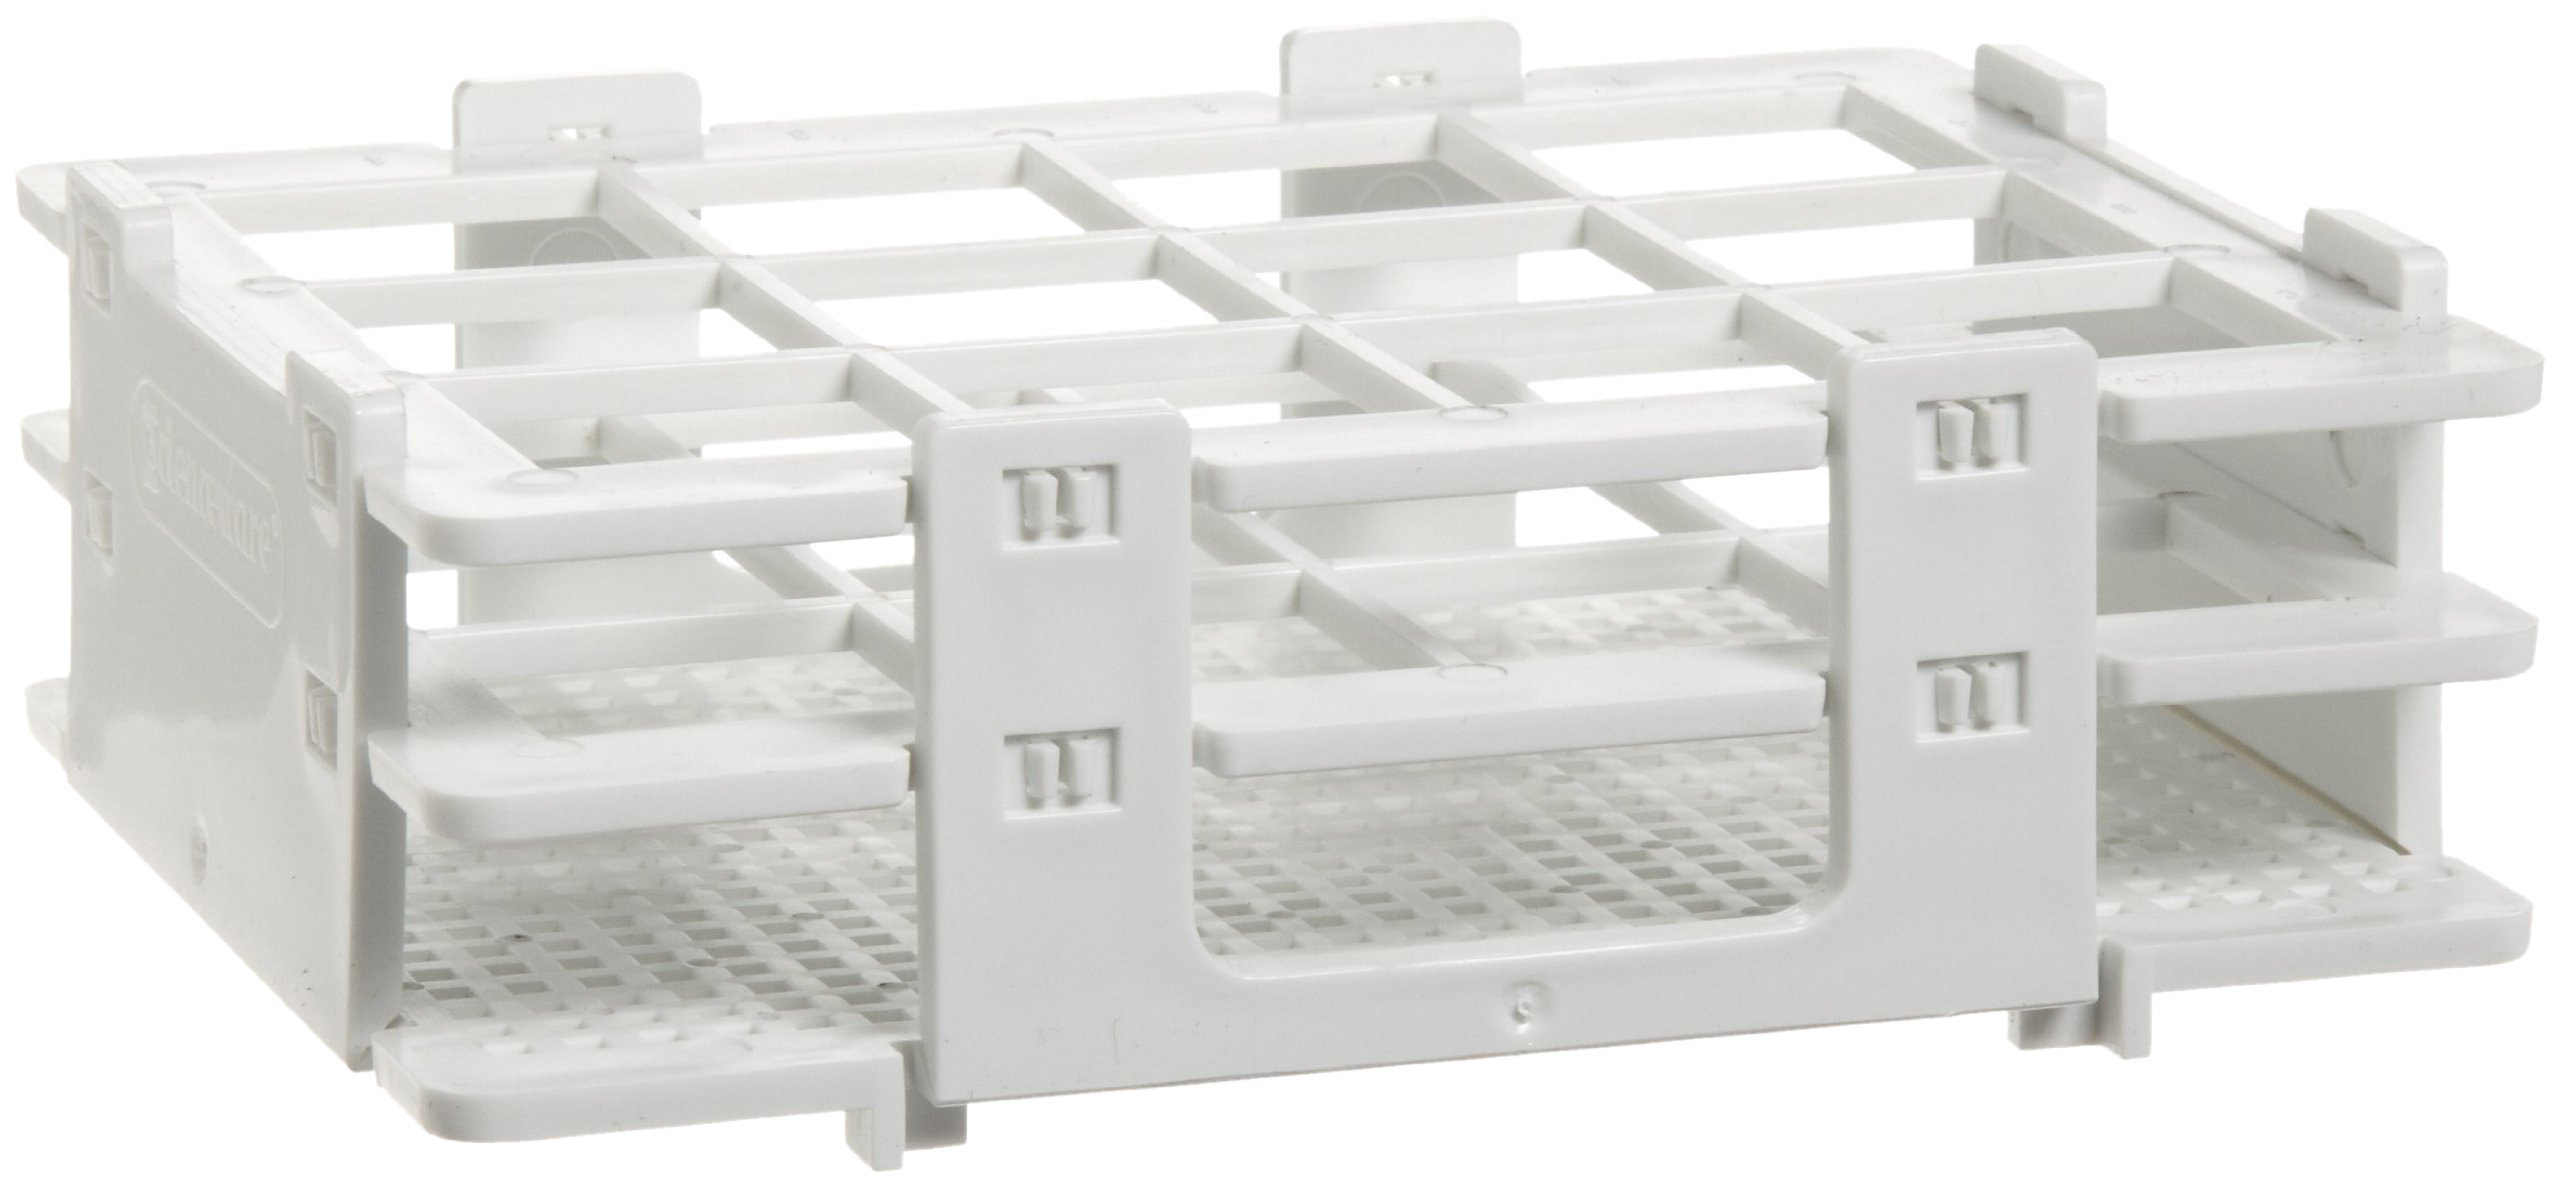 Bel-Art F18514-0025 No-Wire Bottle and Vial Rack; 20-25mm, 12 Places, 5.08 x 4.15 x 1.70 in., Polypropylene by SP Scienceware (Image #1)